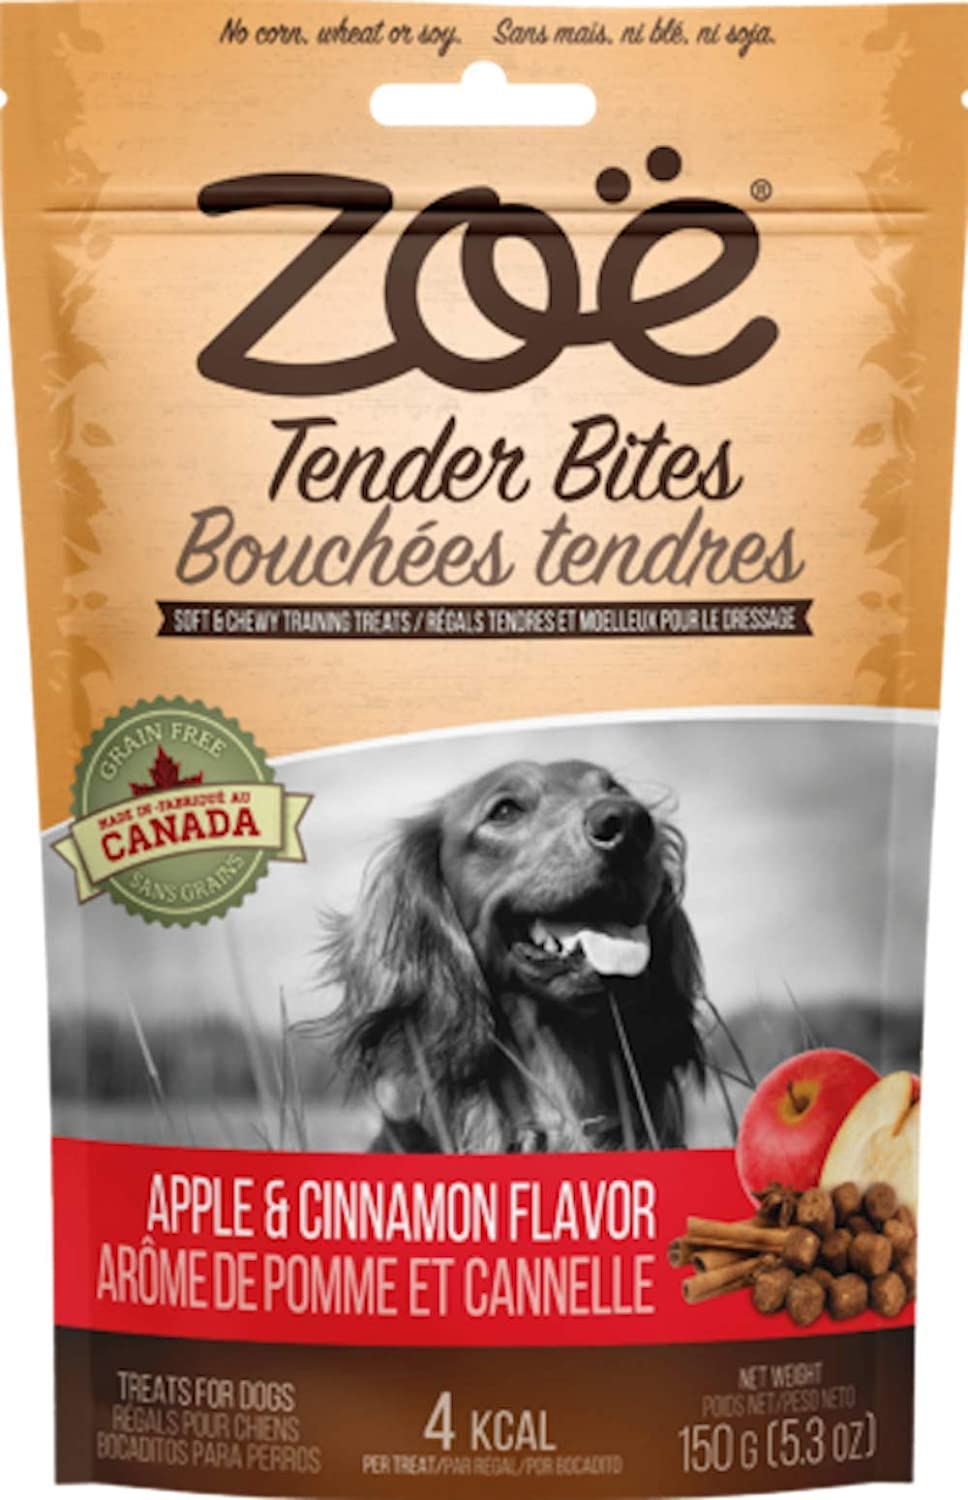 Zoe Tender Bites for Dogs, All Natural Dog Treats, Apple and Cinnamon, 5.3 Oz (Package May Vary)